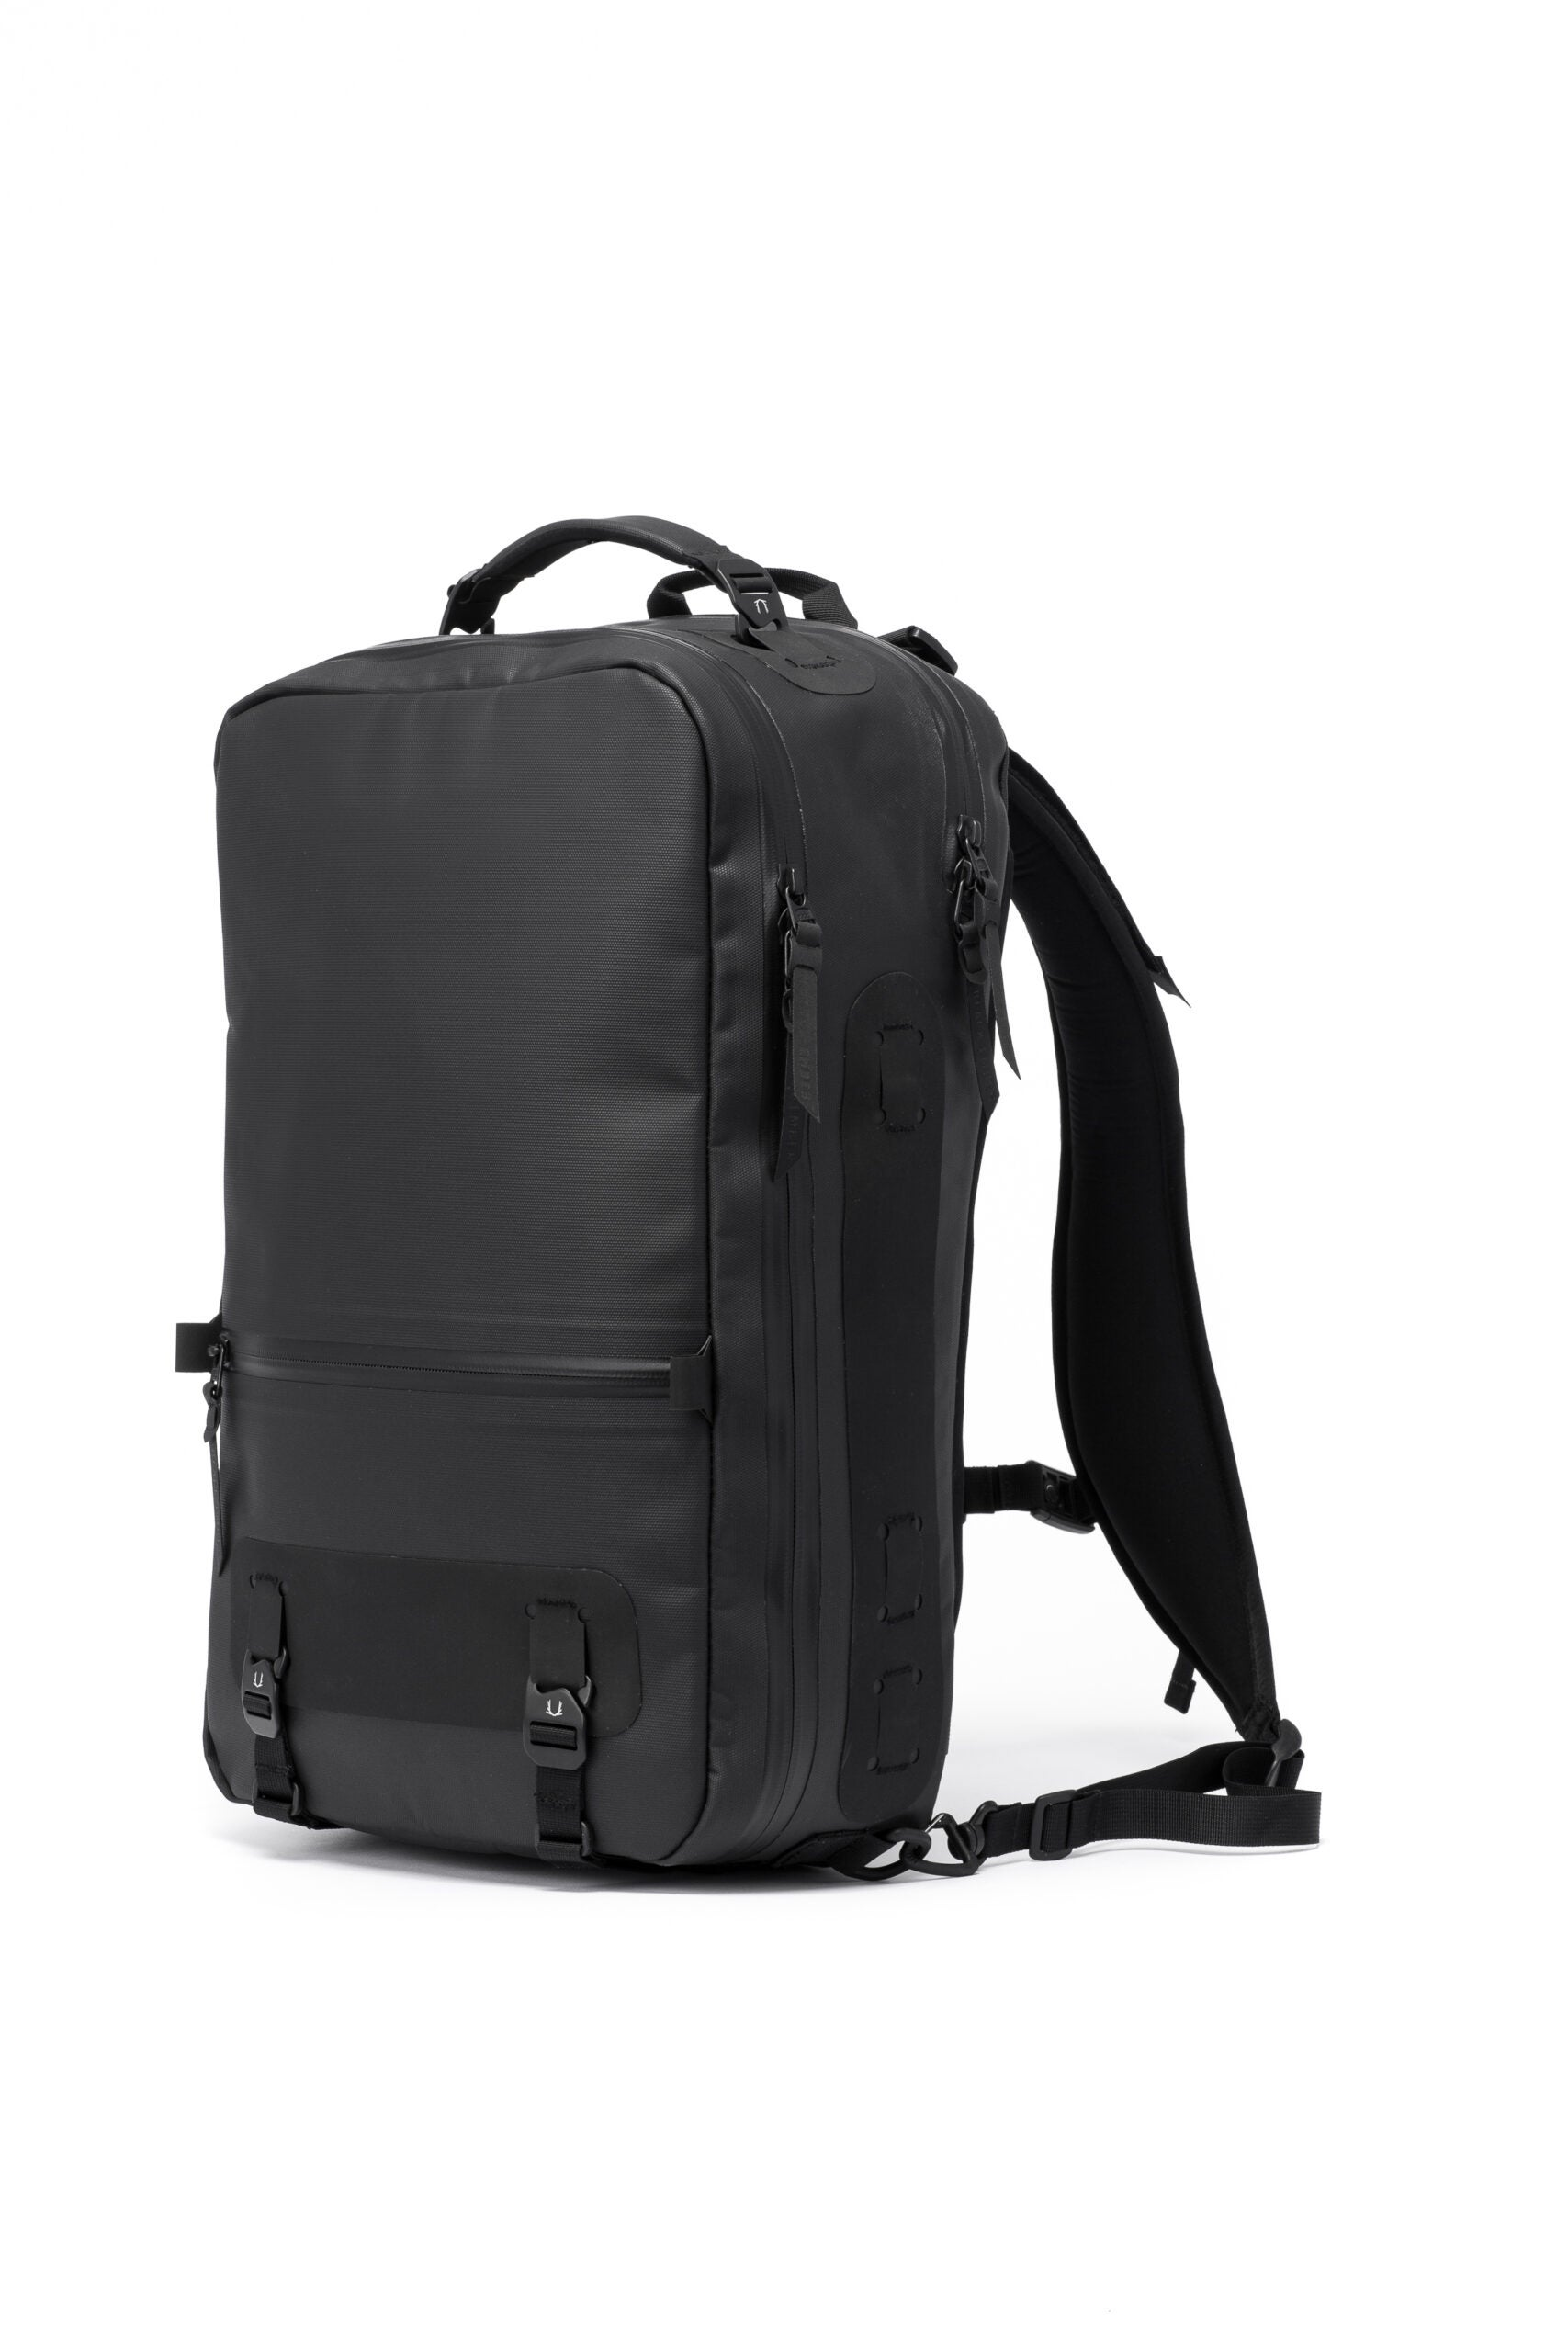 Black Ember used laser-cutting and bonding to make a rugged, waterproof backpack